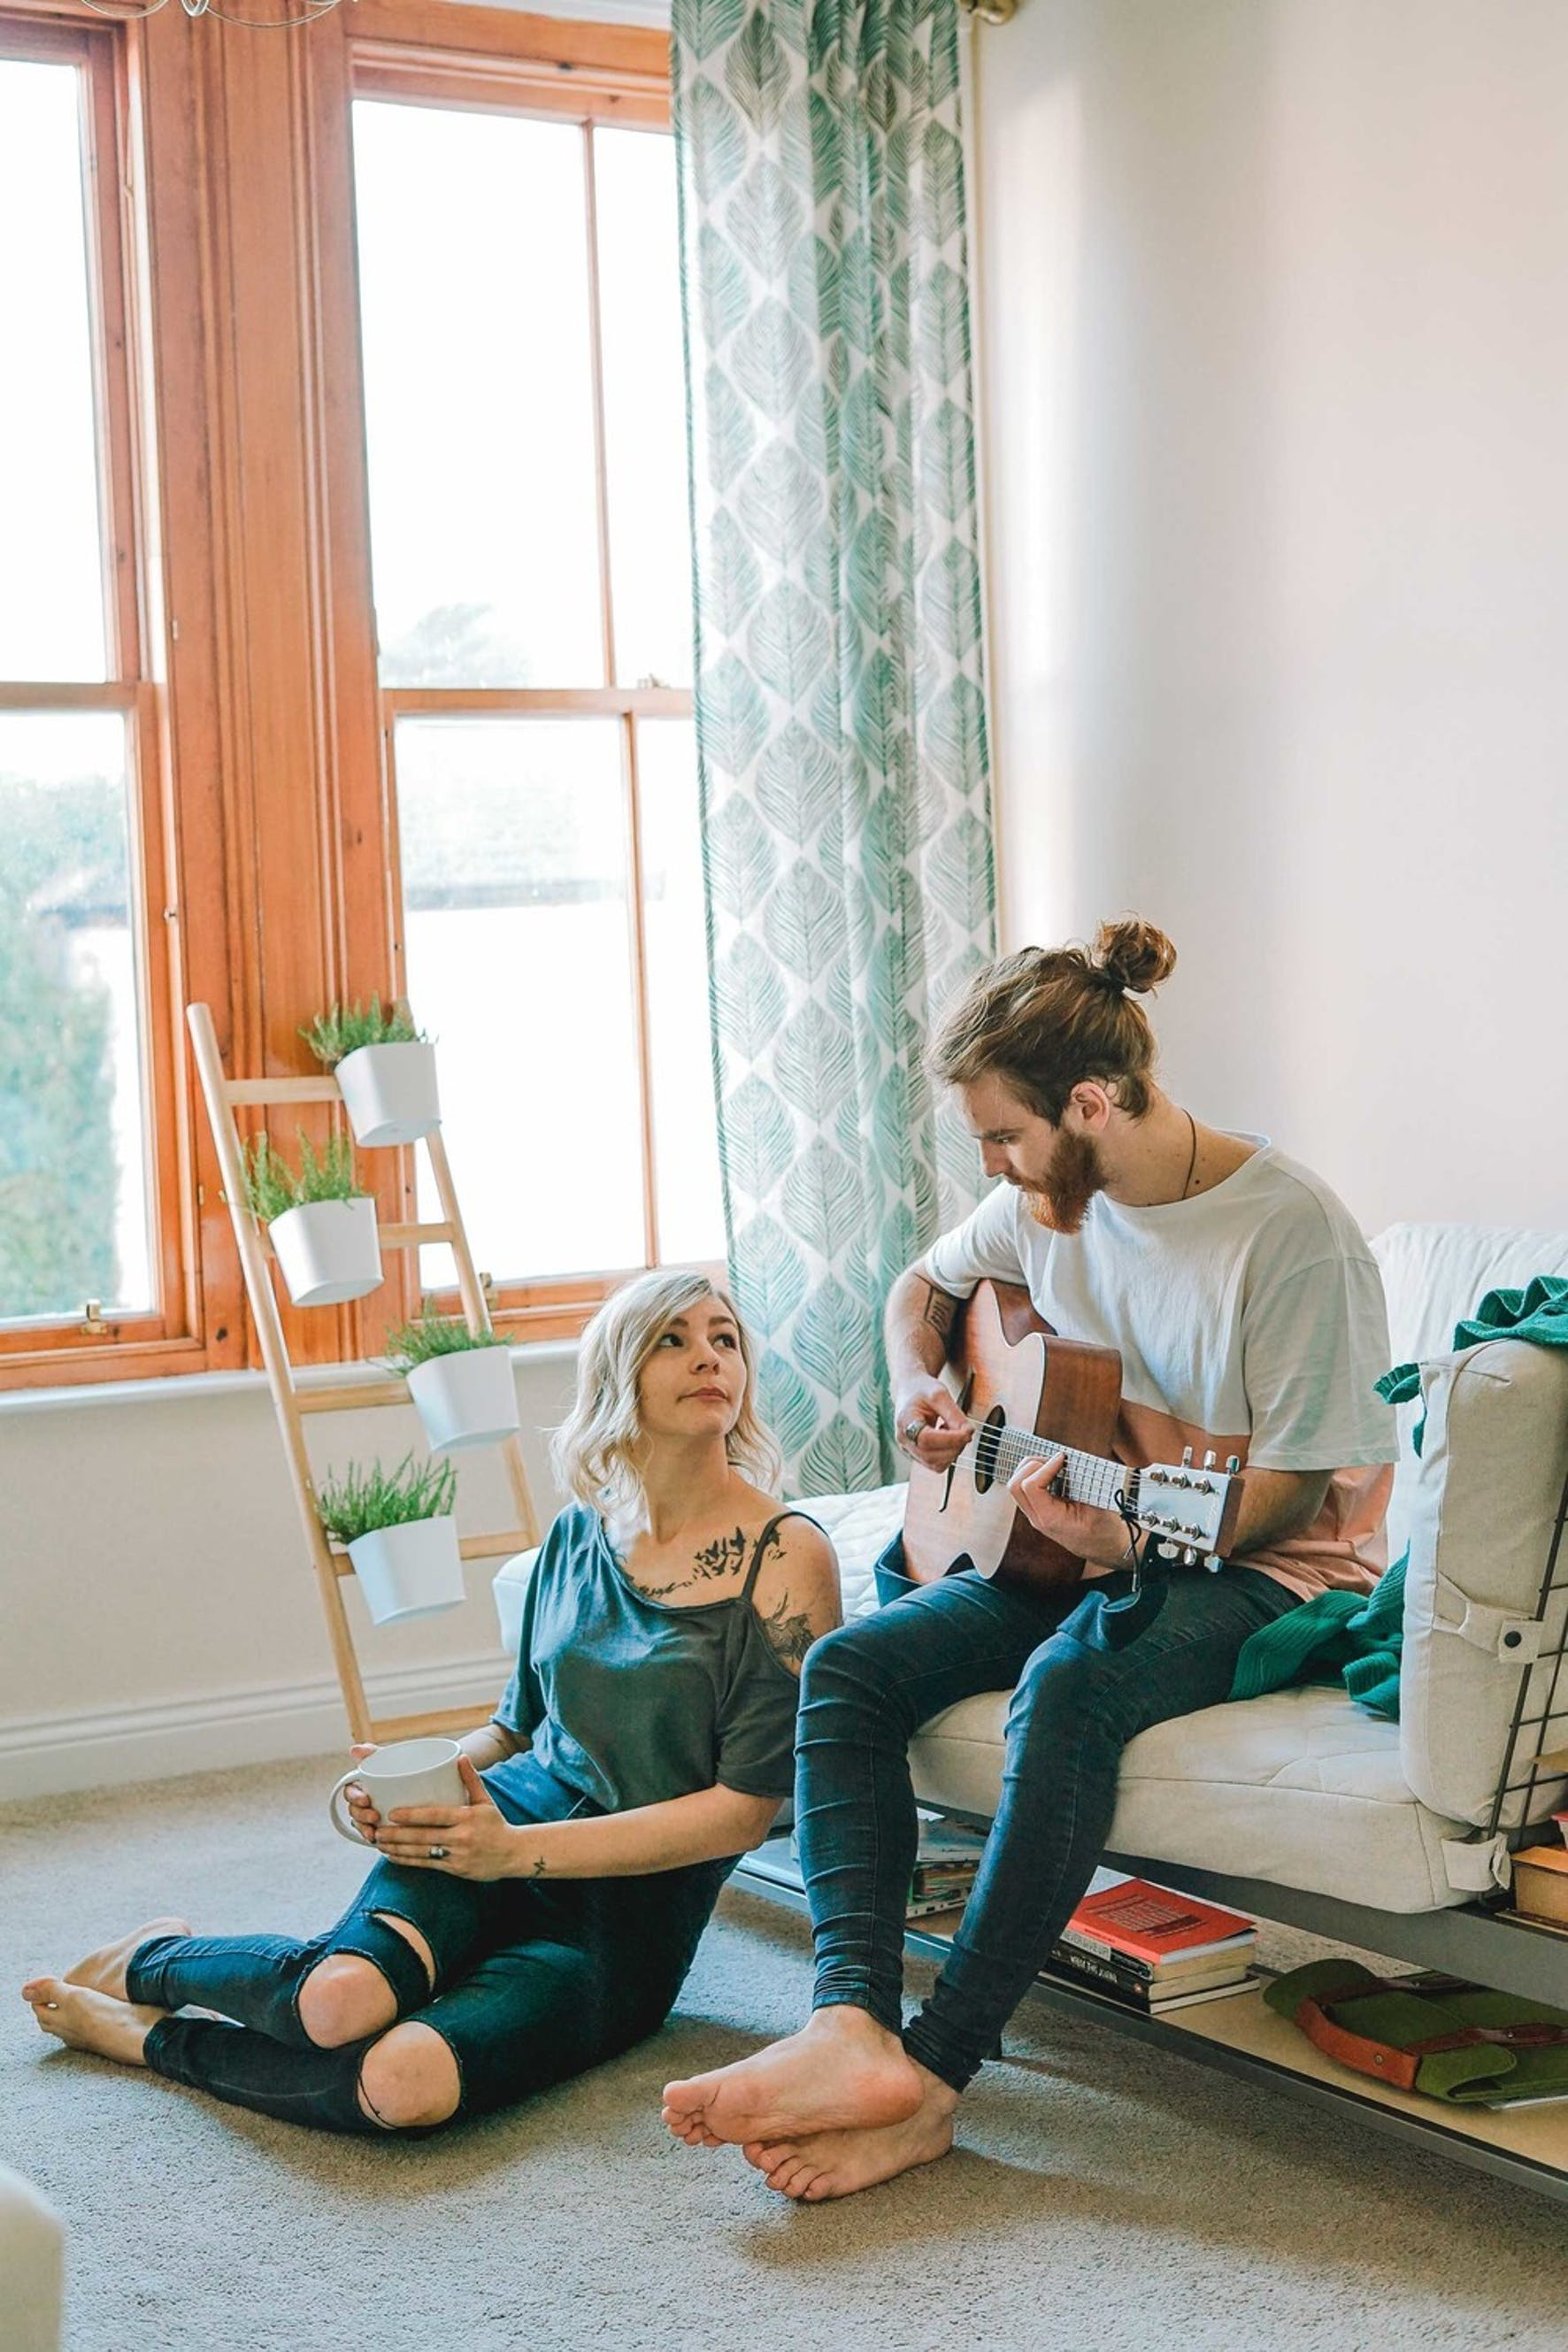 A married couple living within their means in a small apartment as they pay down student debt